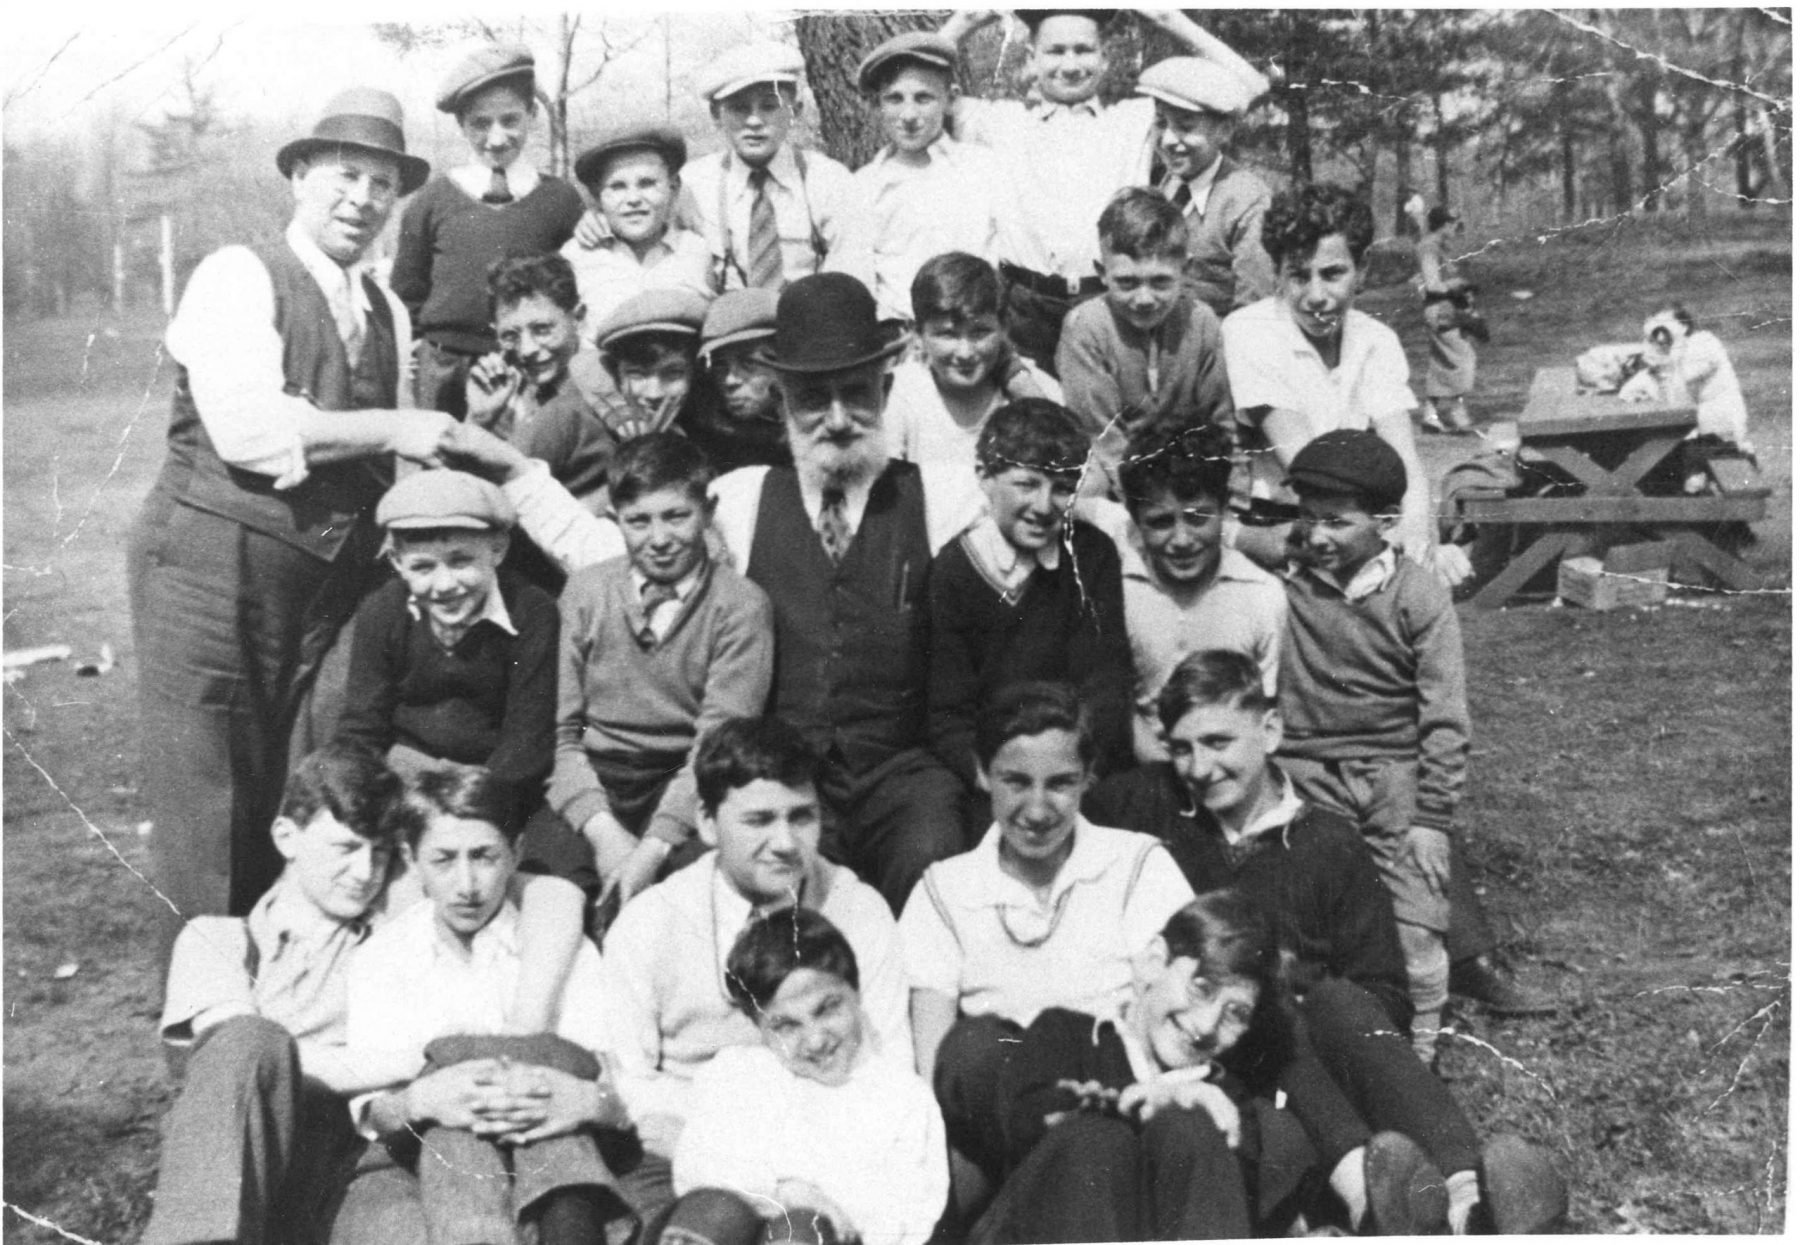 A group of boys pictured with Fischel Cooper, High Park, [between 1935 and 1939]. Fischel Cooper made important contributions to synagogue life at the Kiever Shul. He led the youth congregation and often took members on outings to Queen's Park and High Park.   OJA, item 18.